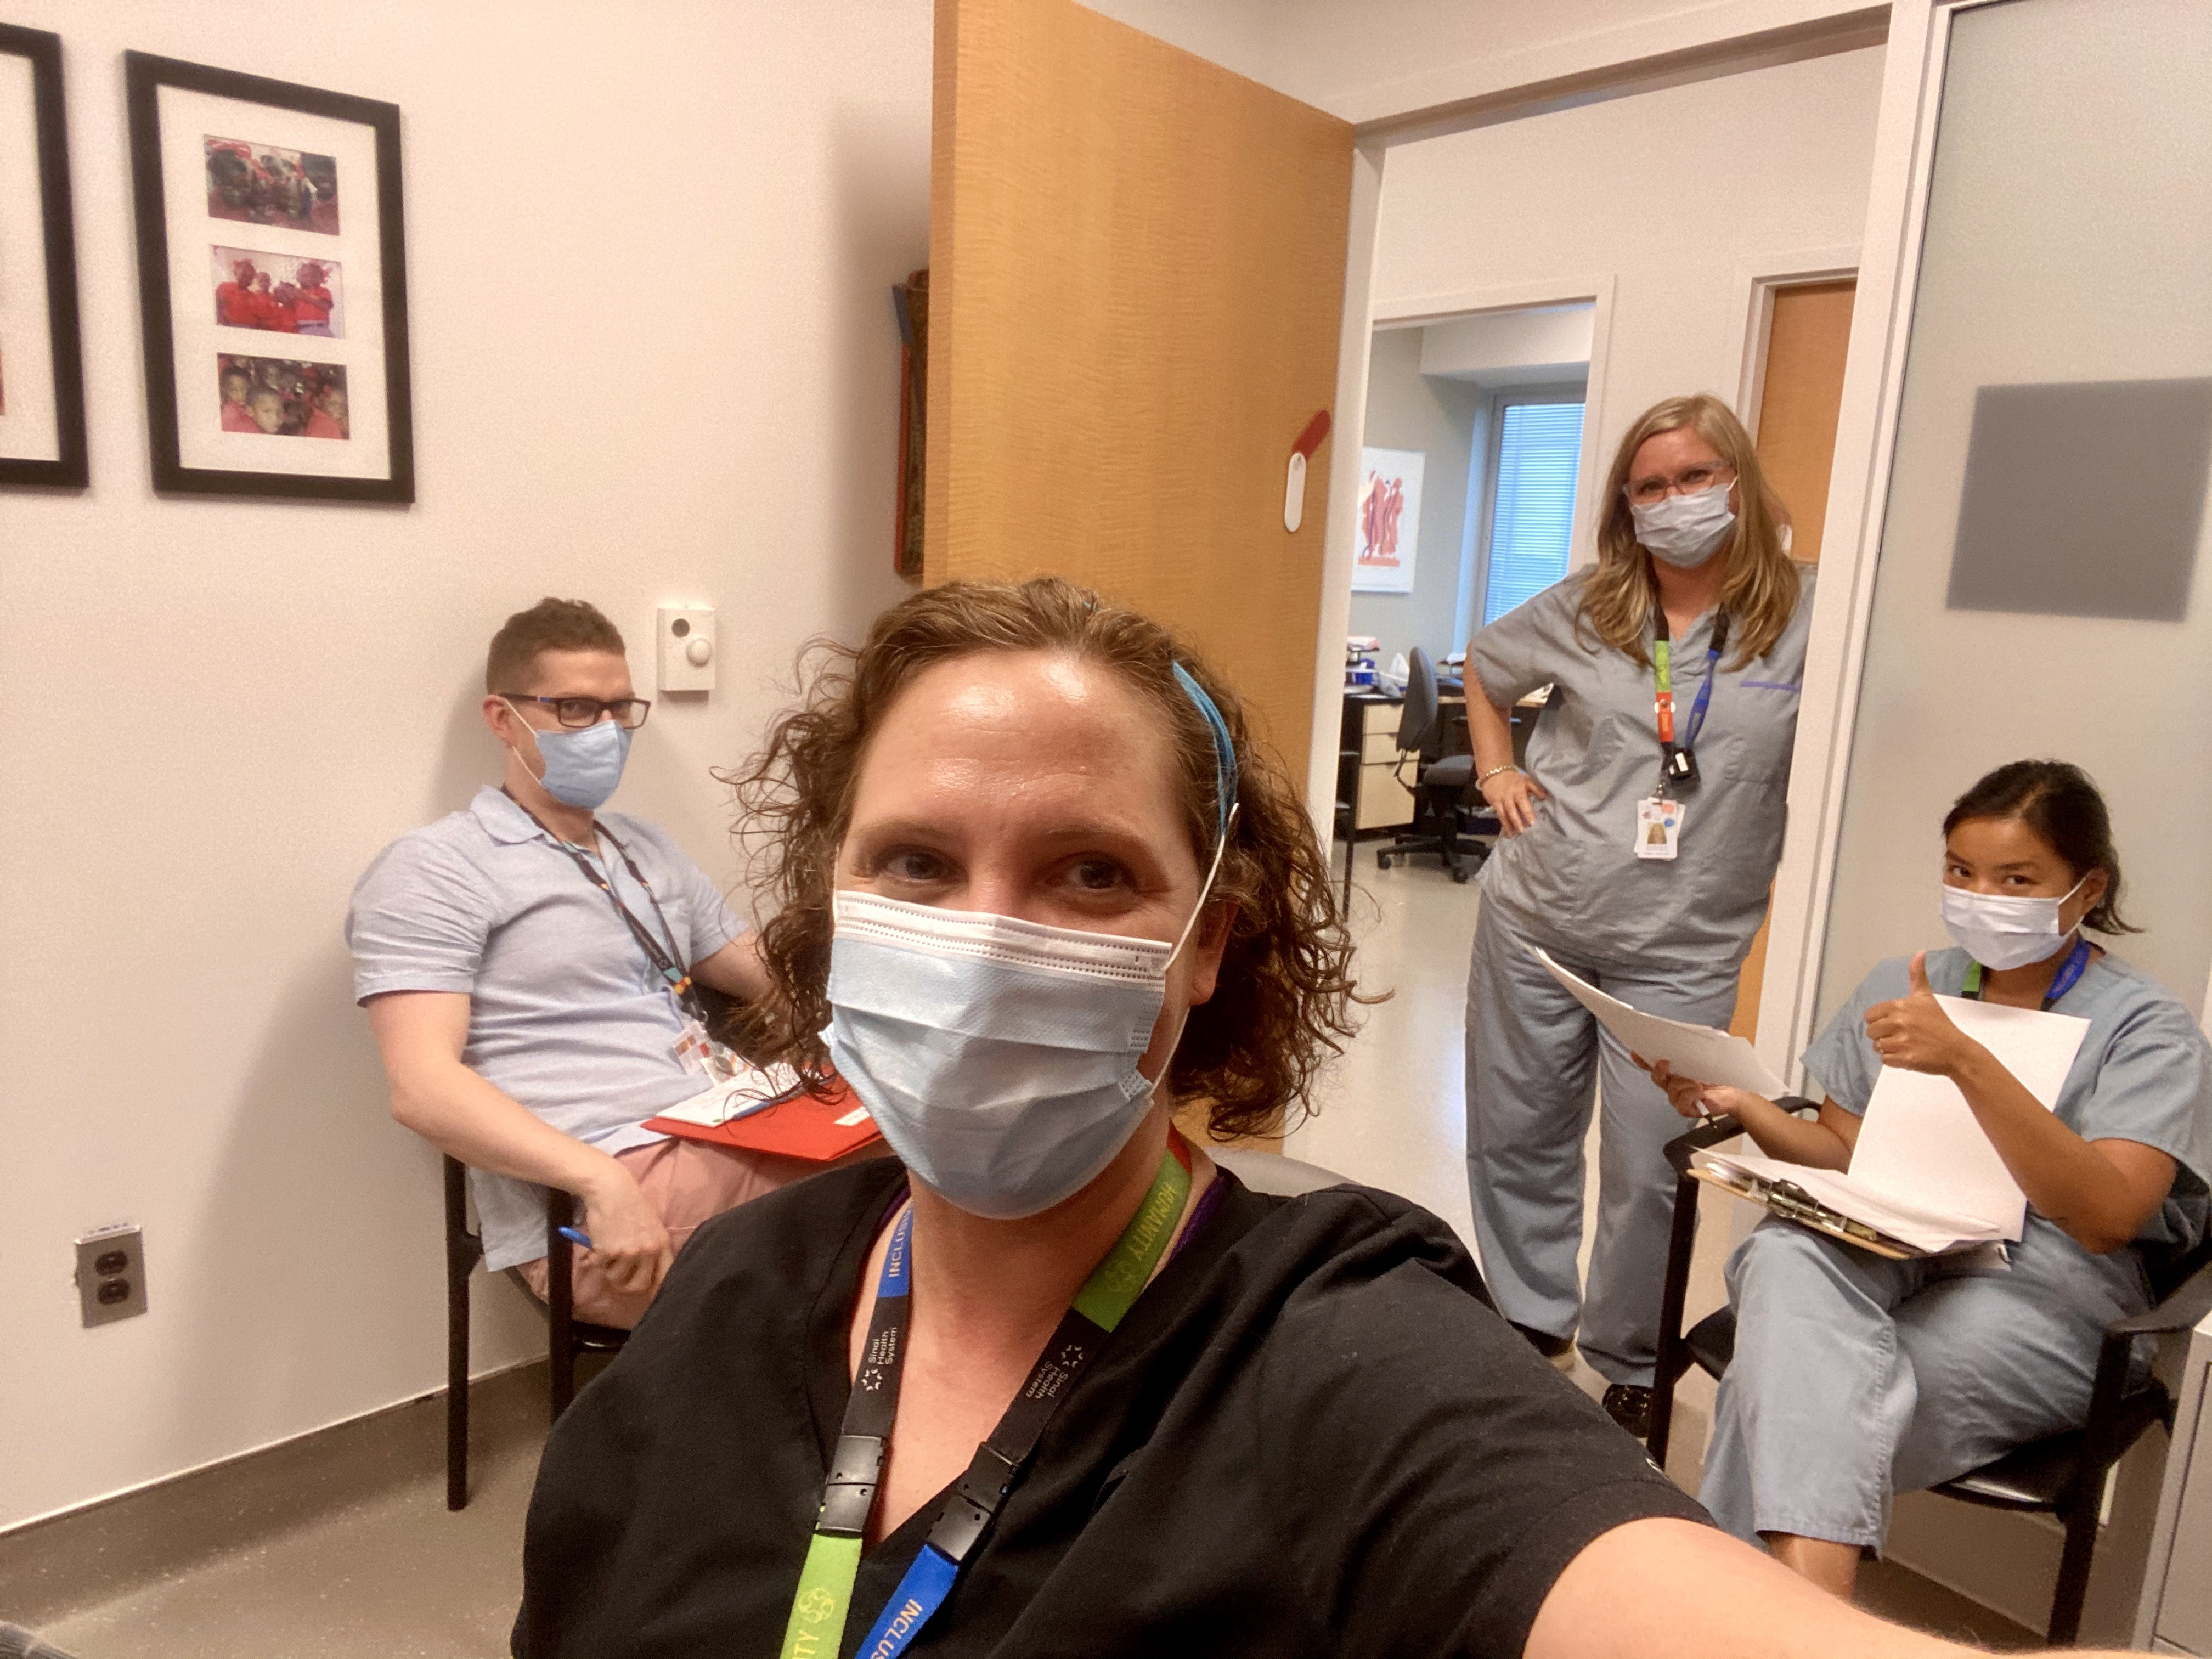 Four employees at the pain management clinic